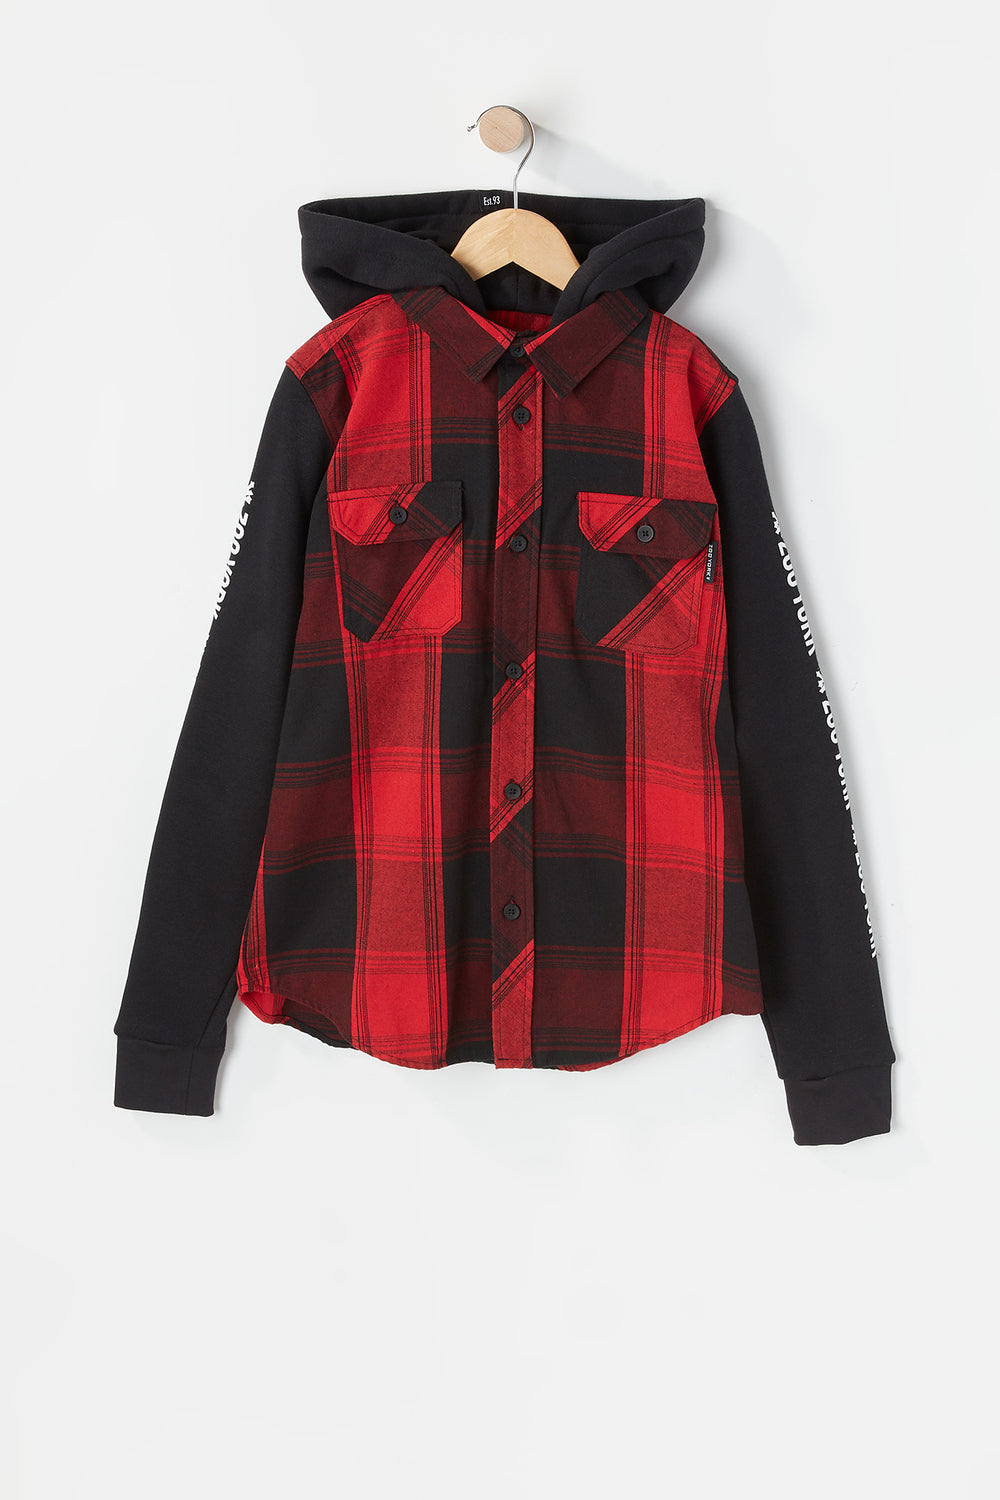 Zoo York Youth Hooded Flannel Button-Up Red